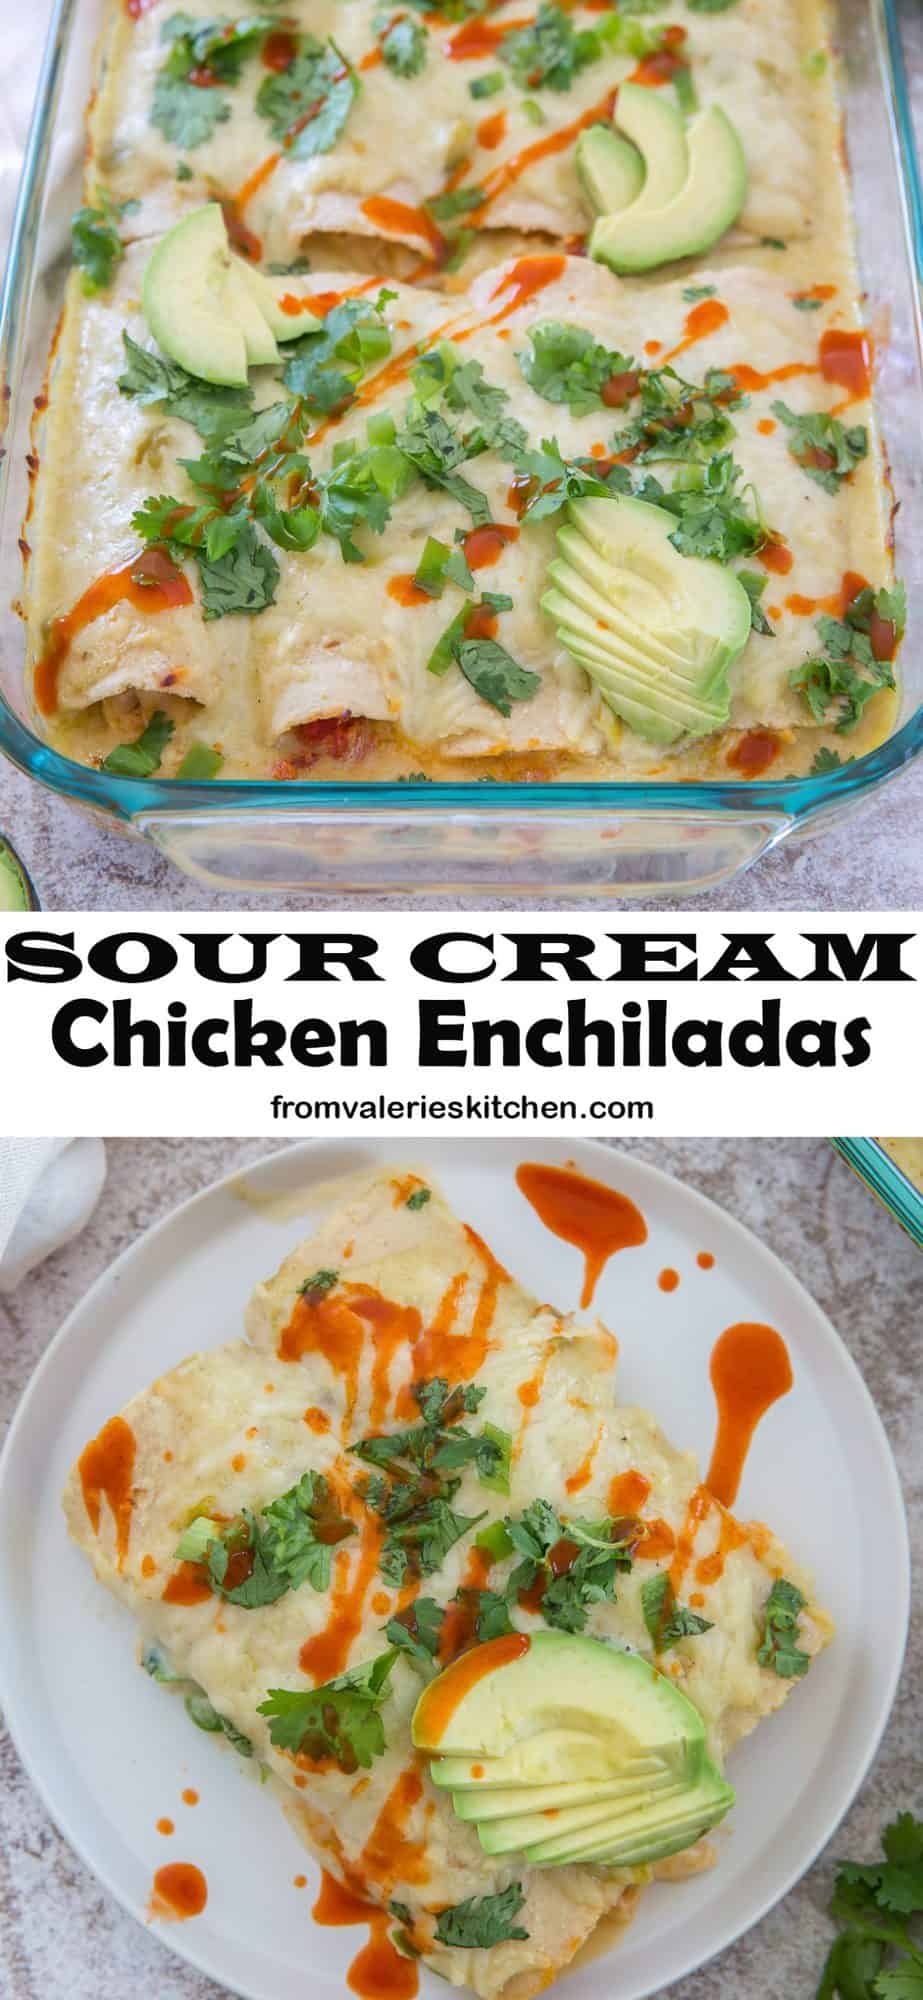 A two image vertical collage of Sour Cream Chicken Enchiladas with overlay text.